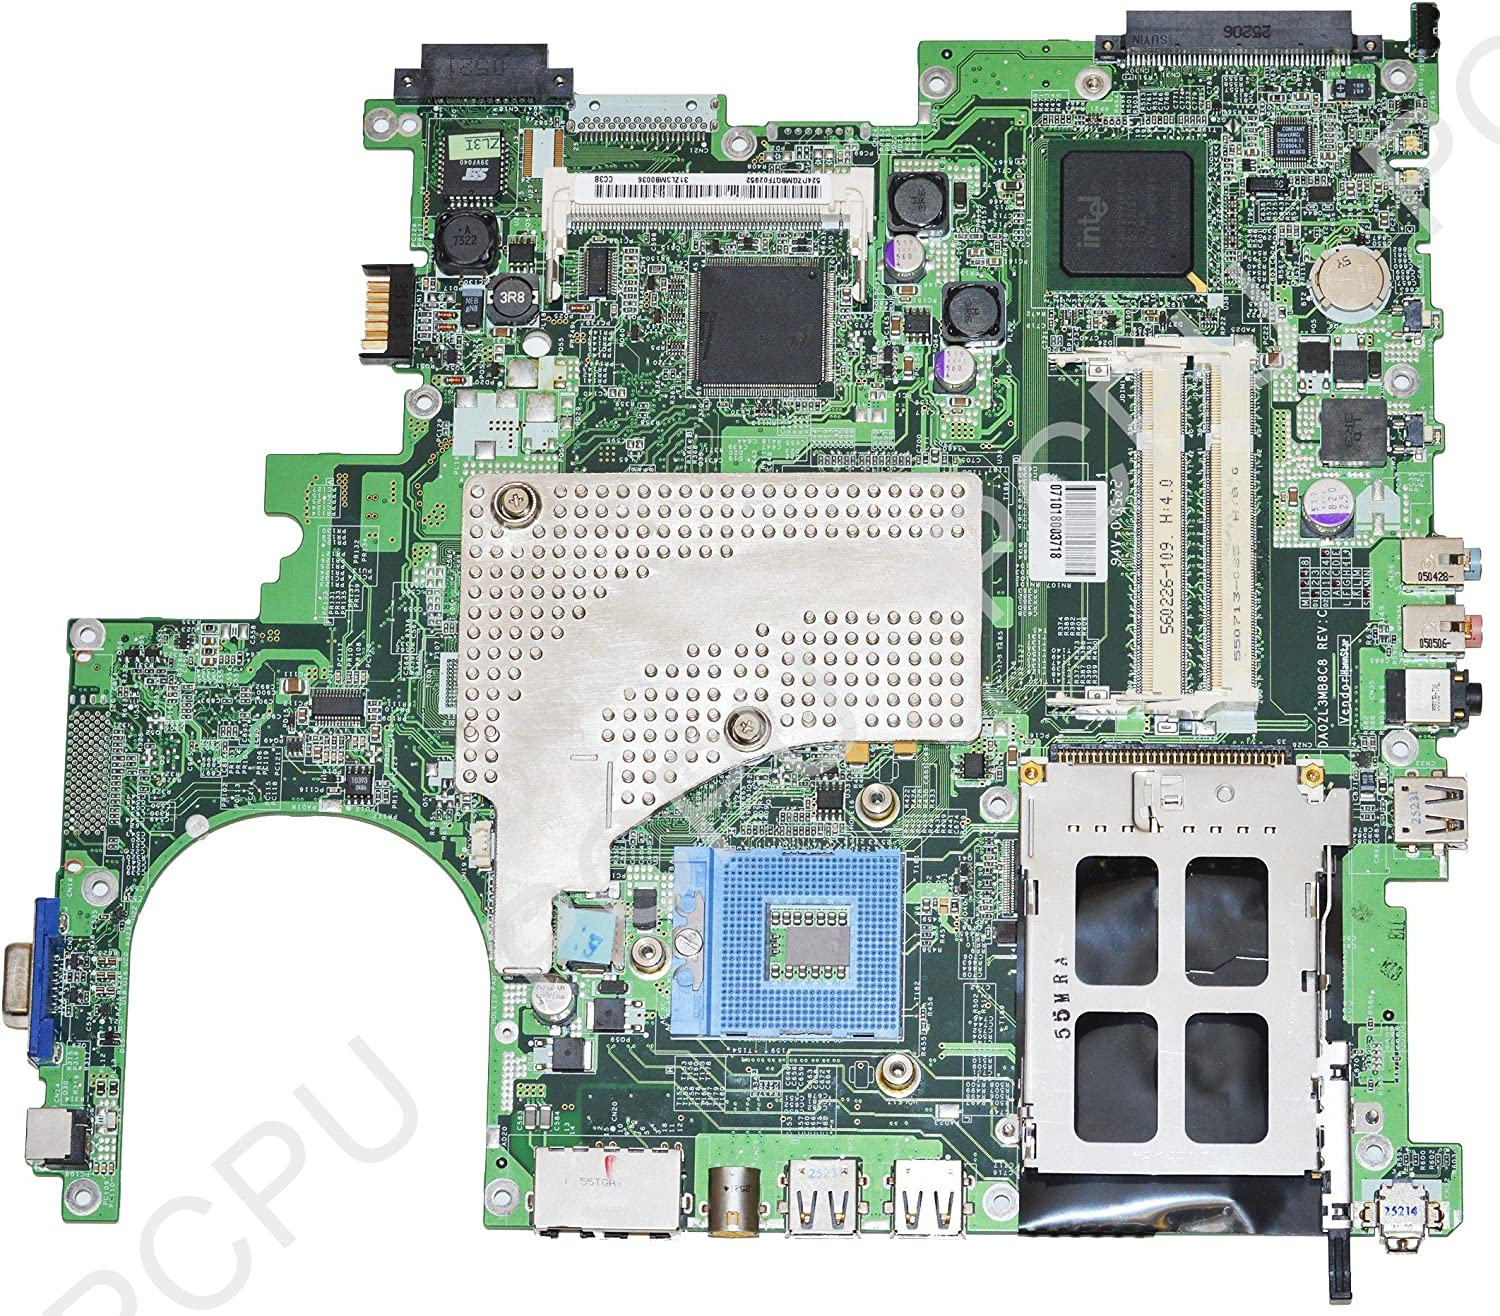 Acer - Acer Travelmate 4100 Laptop Motherboard